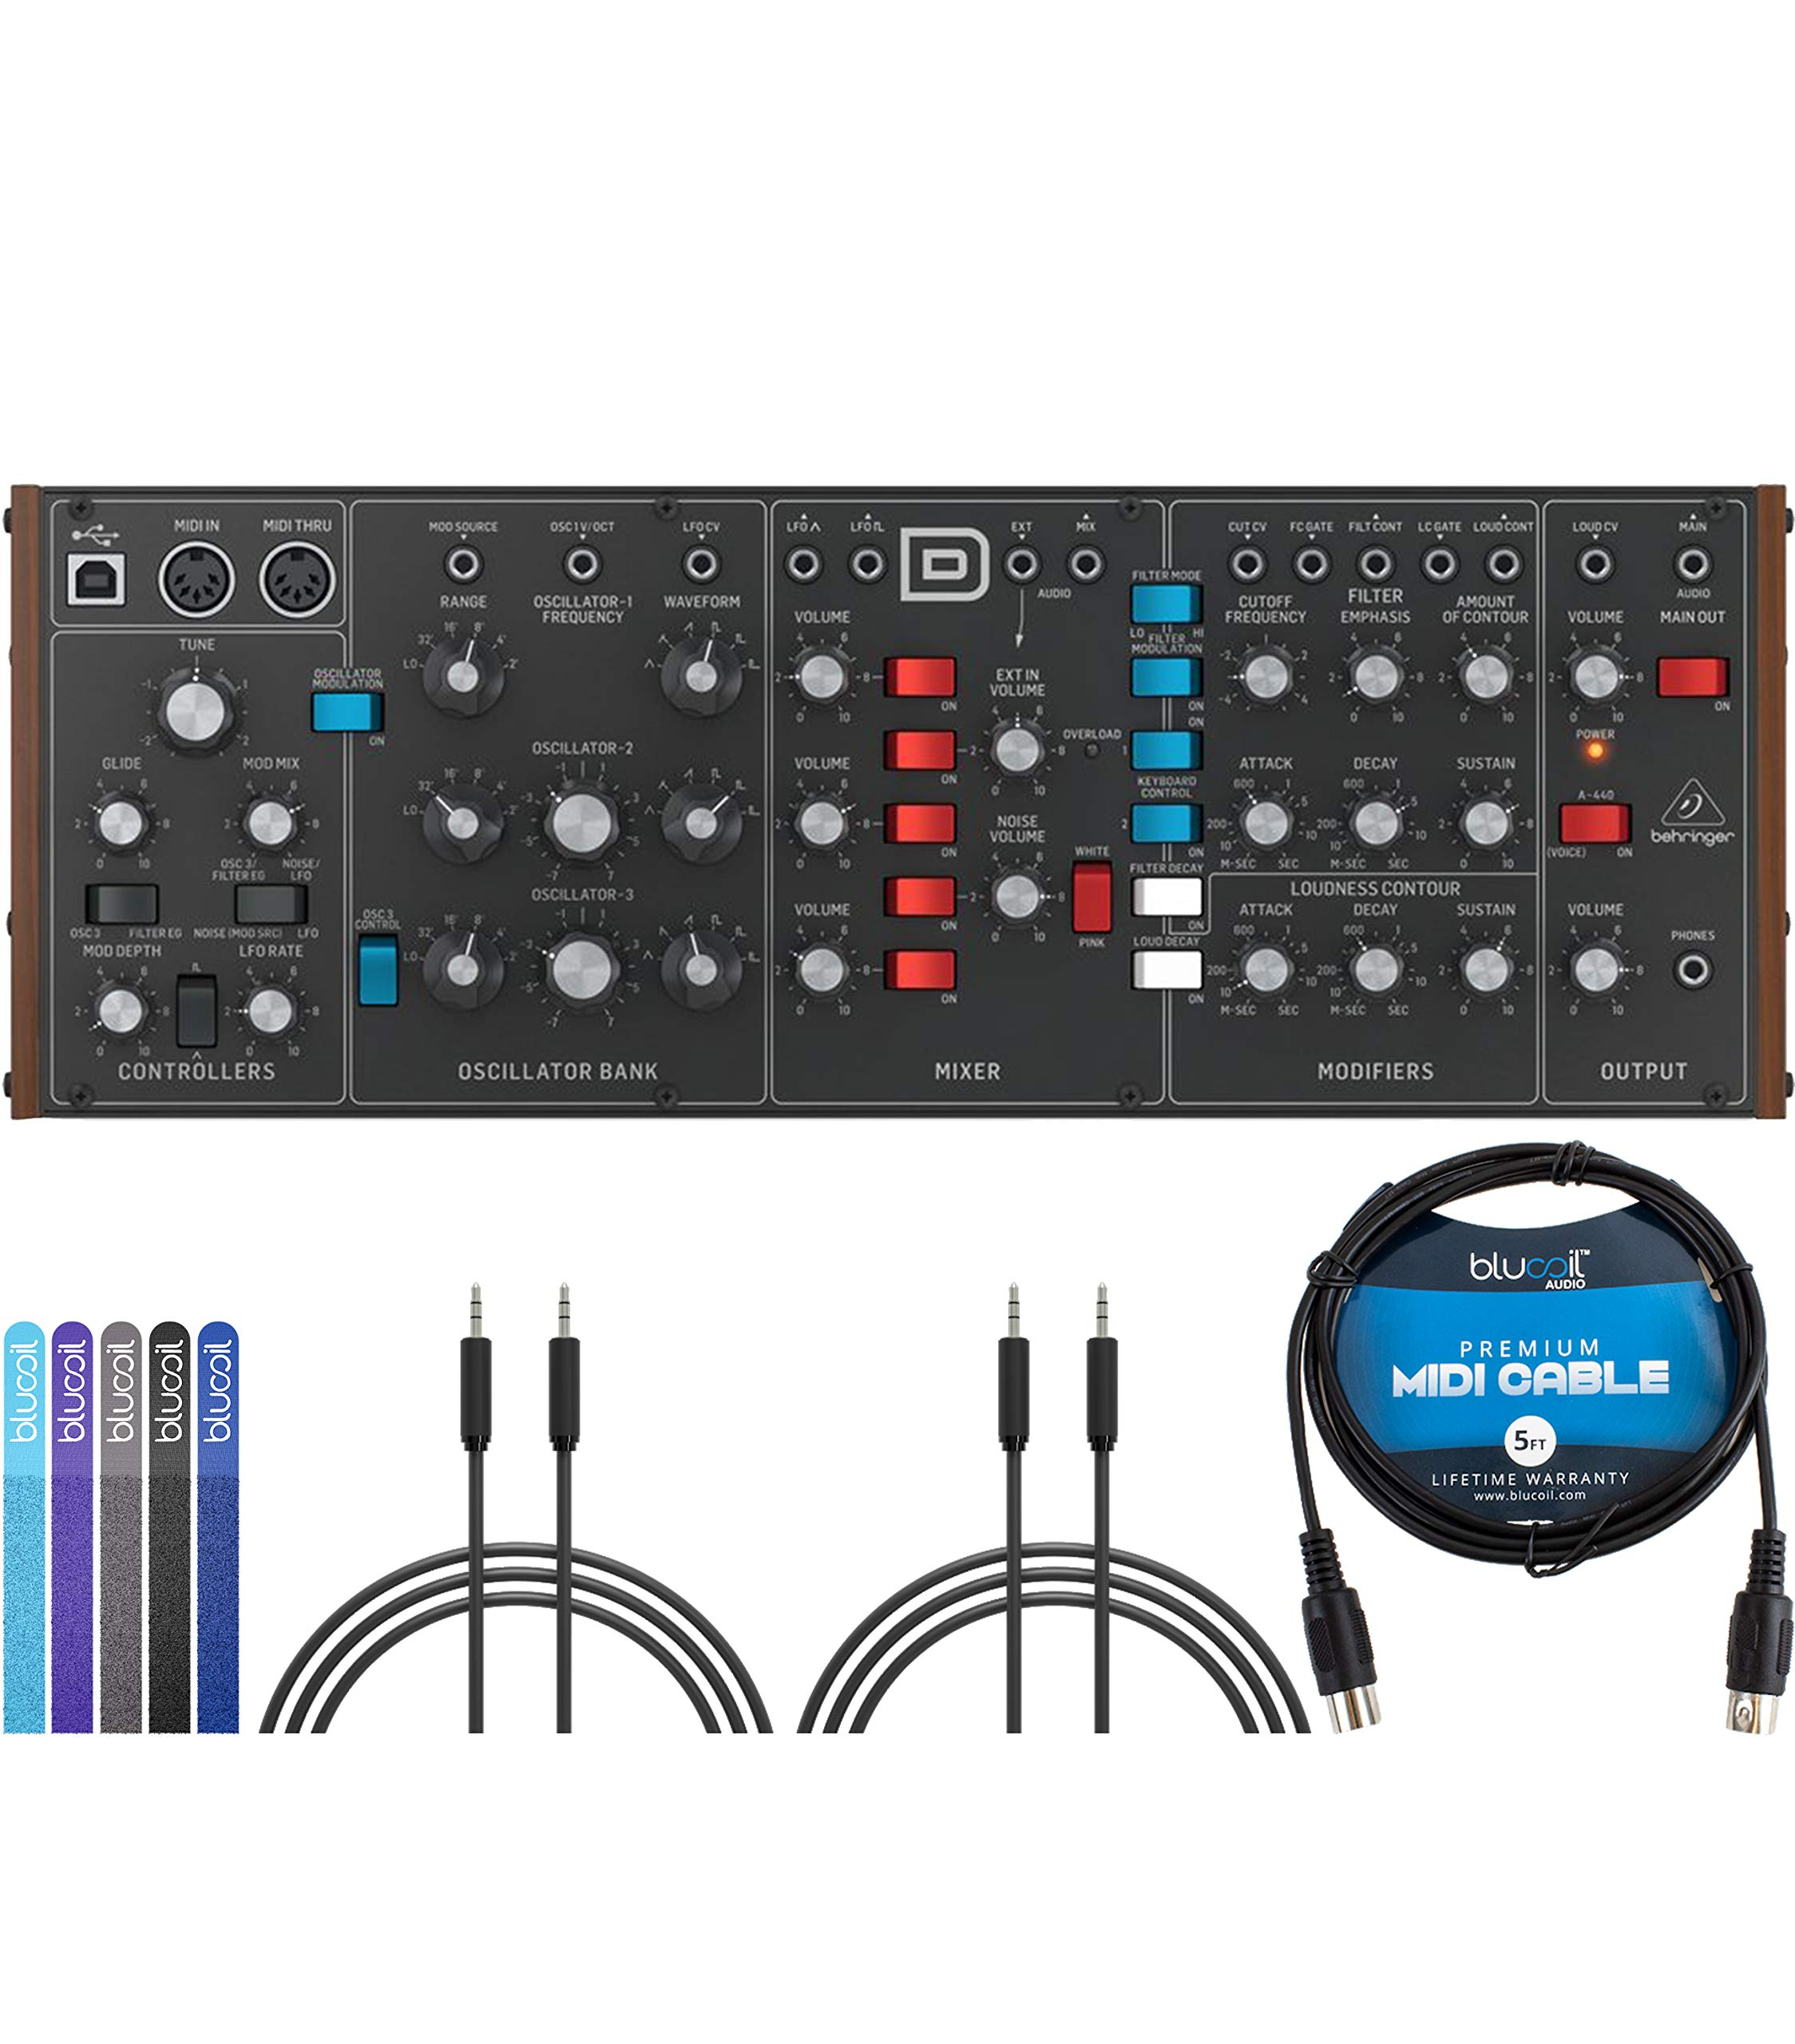 Behringer MODEL D Monophonic Synthesizer Bundle with 2-Pack of 6-FT Stereo Aux Cables, Blucoil 5-FT MIDI Cable, and 5-Pack of Reusable Cable Ties